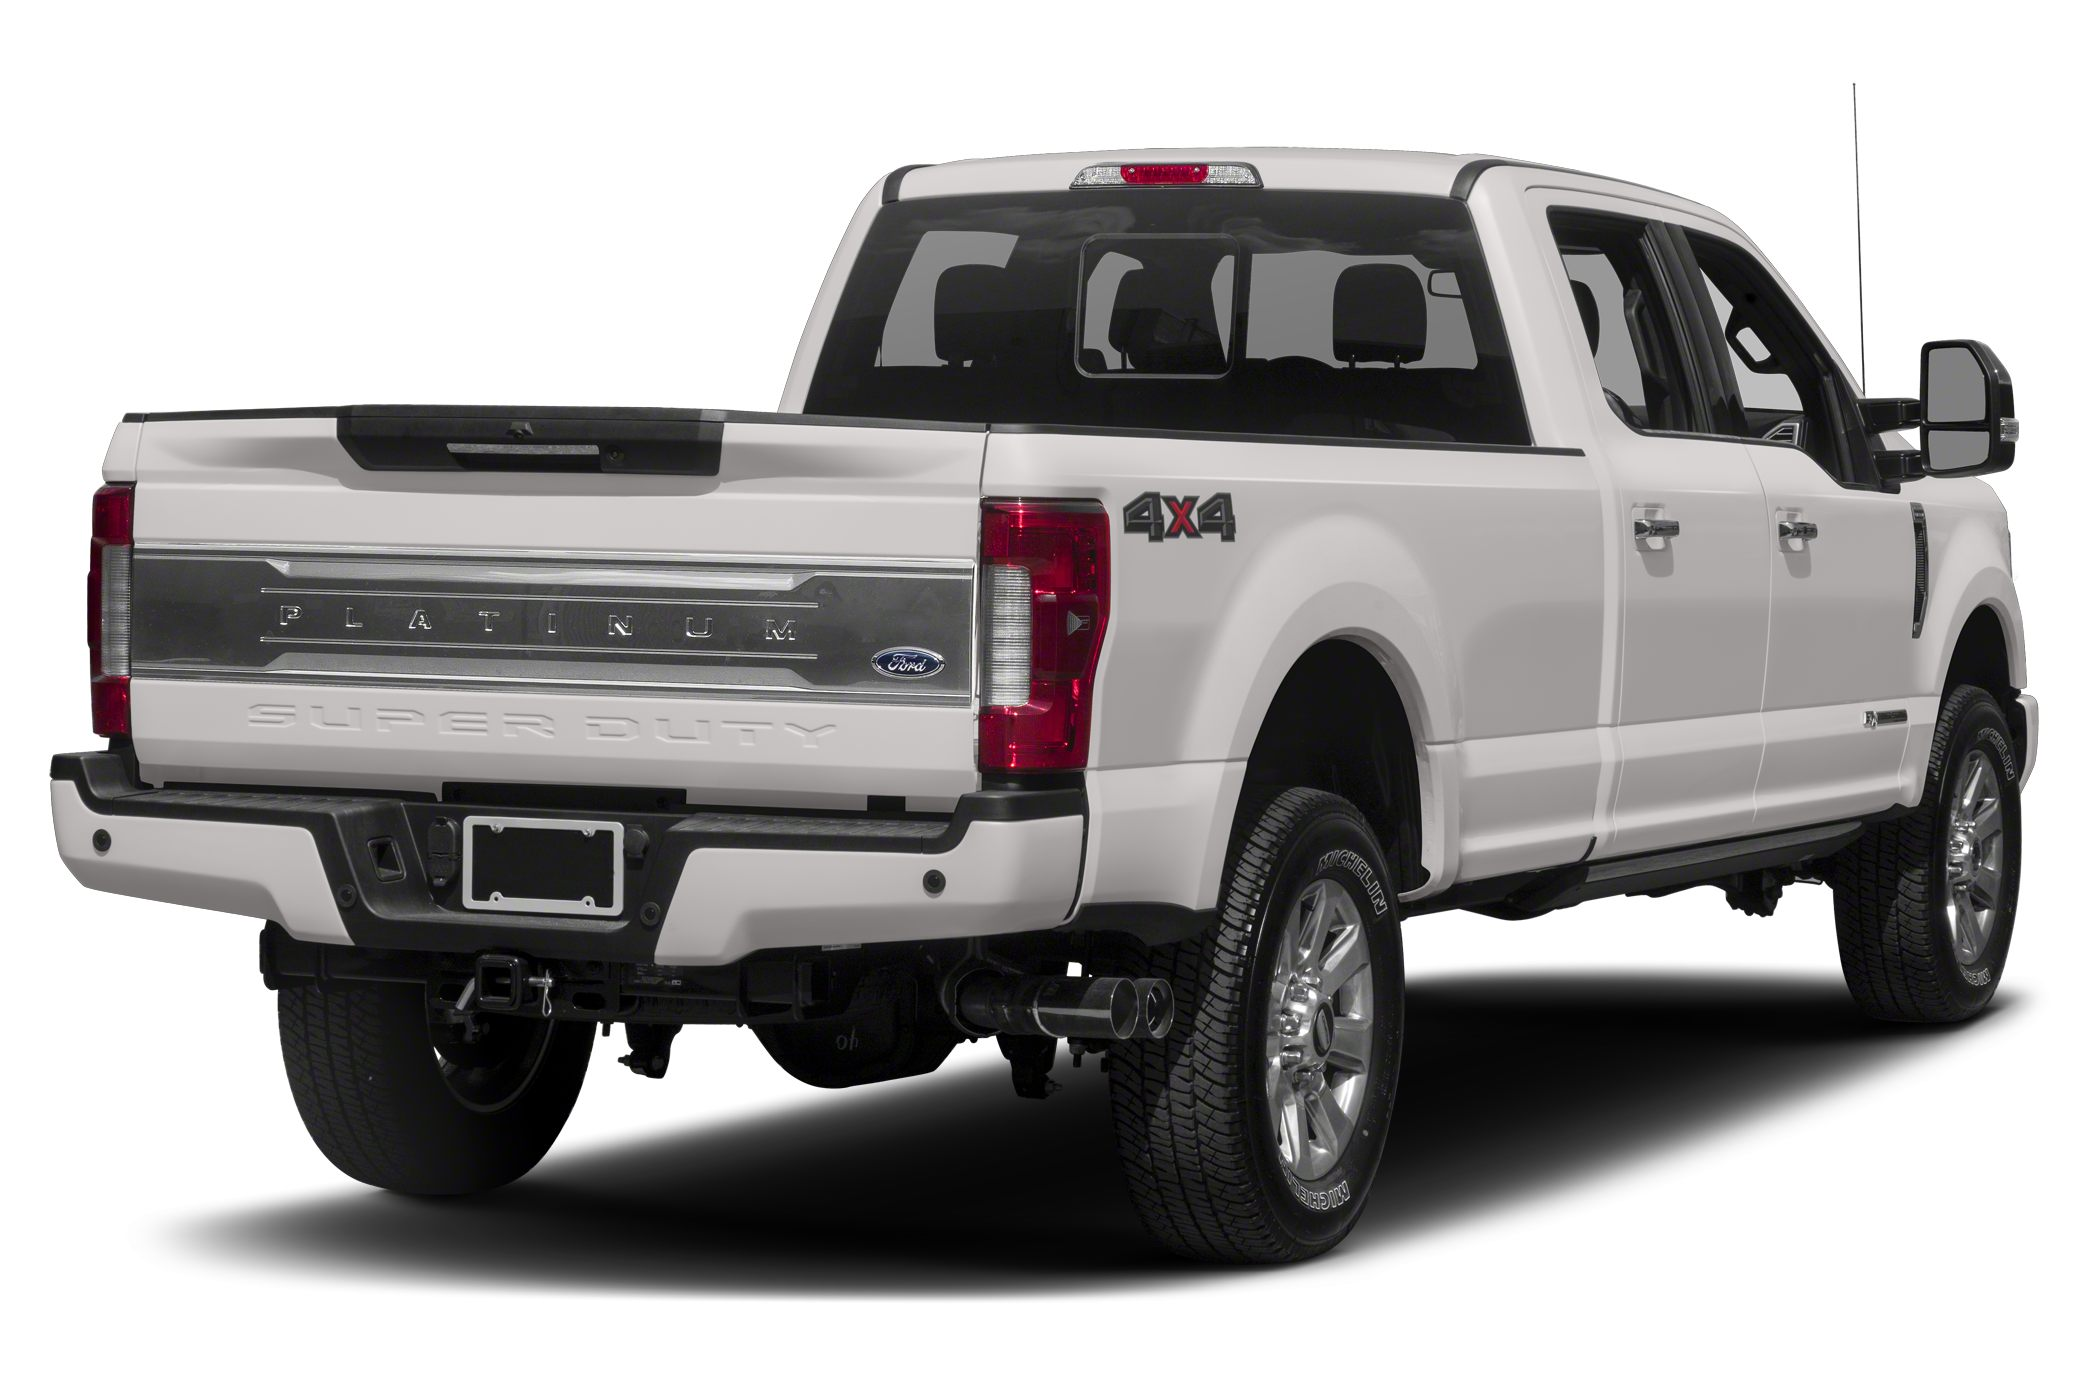 2017 Ford F250 Reviews, Specs and Prices | Cars.com